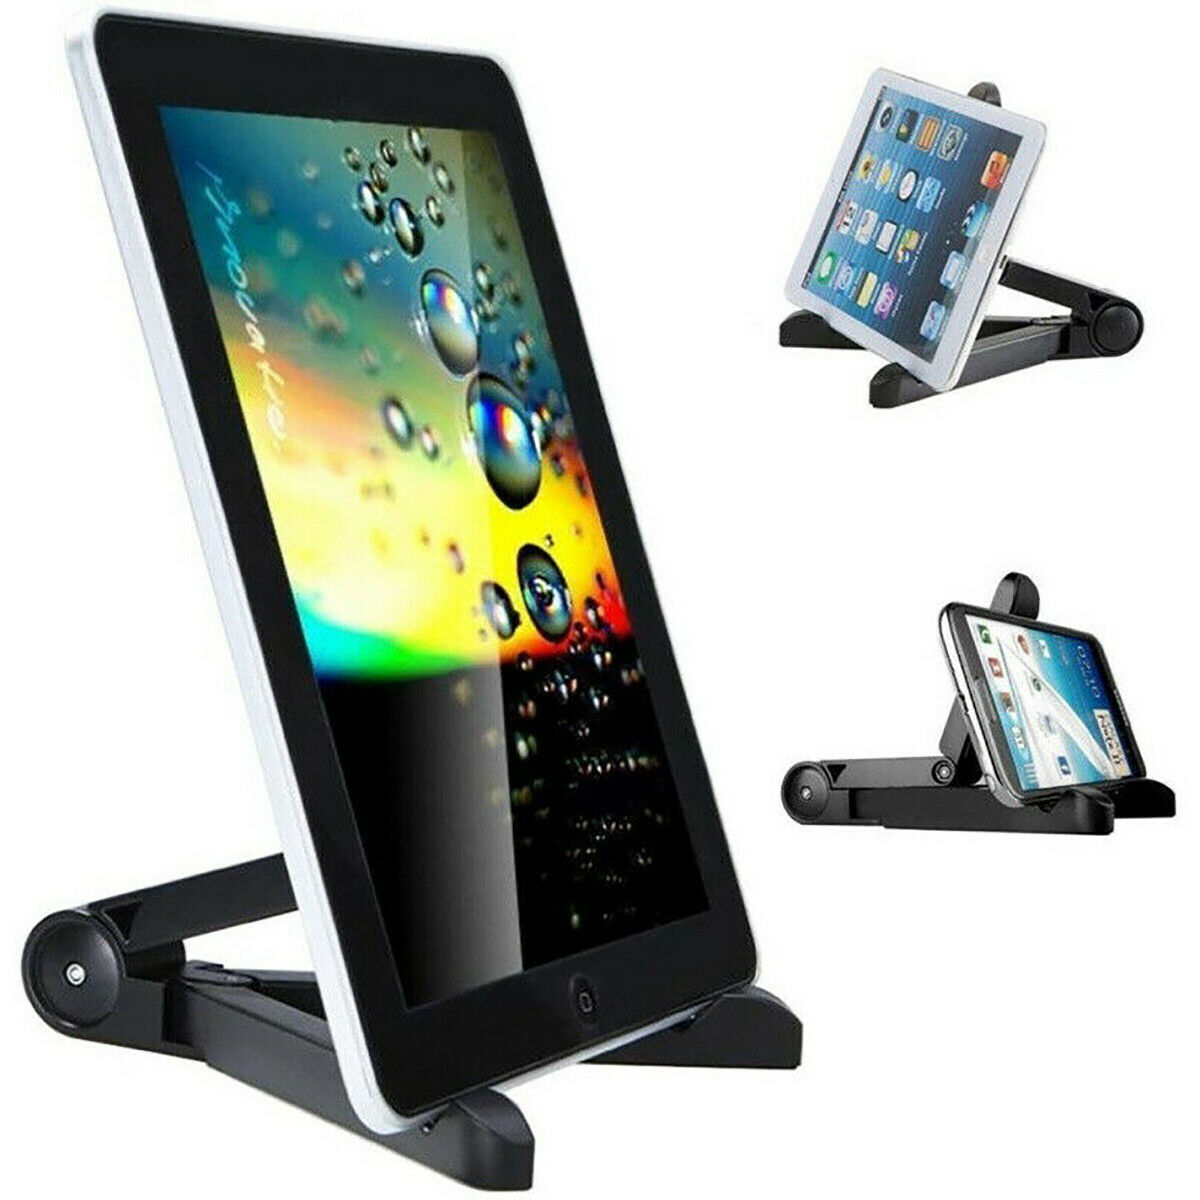 Folding Adjustable Bracket Stand Holder for iPad iPhone Android Tablet (Black)